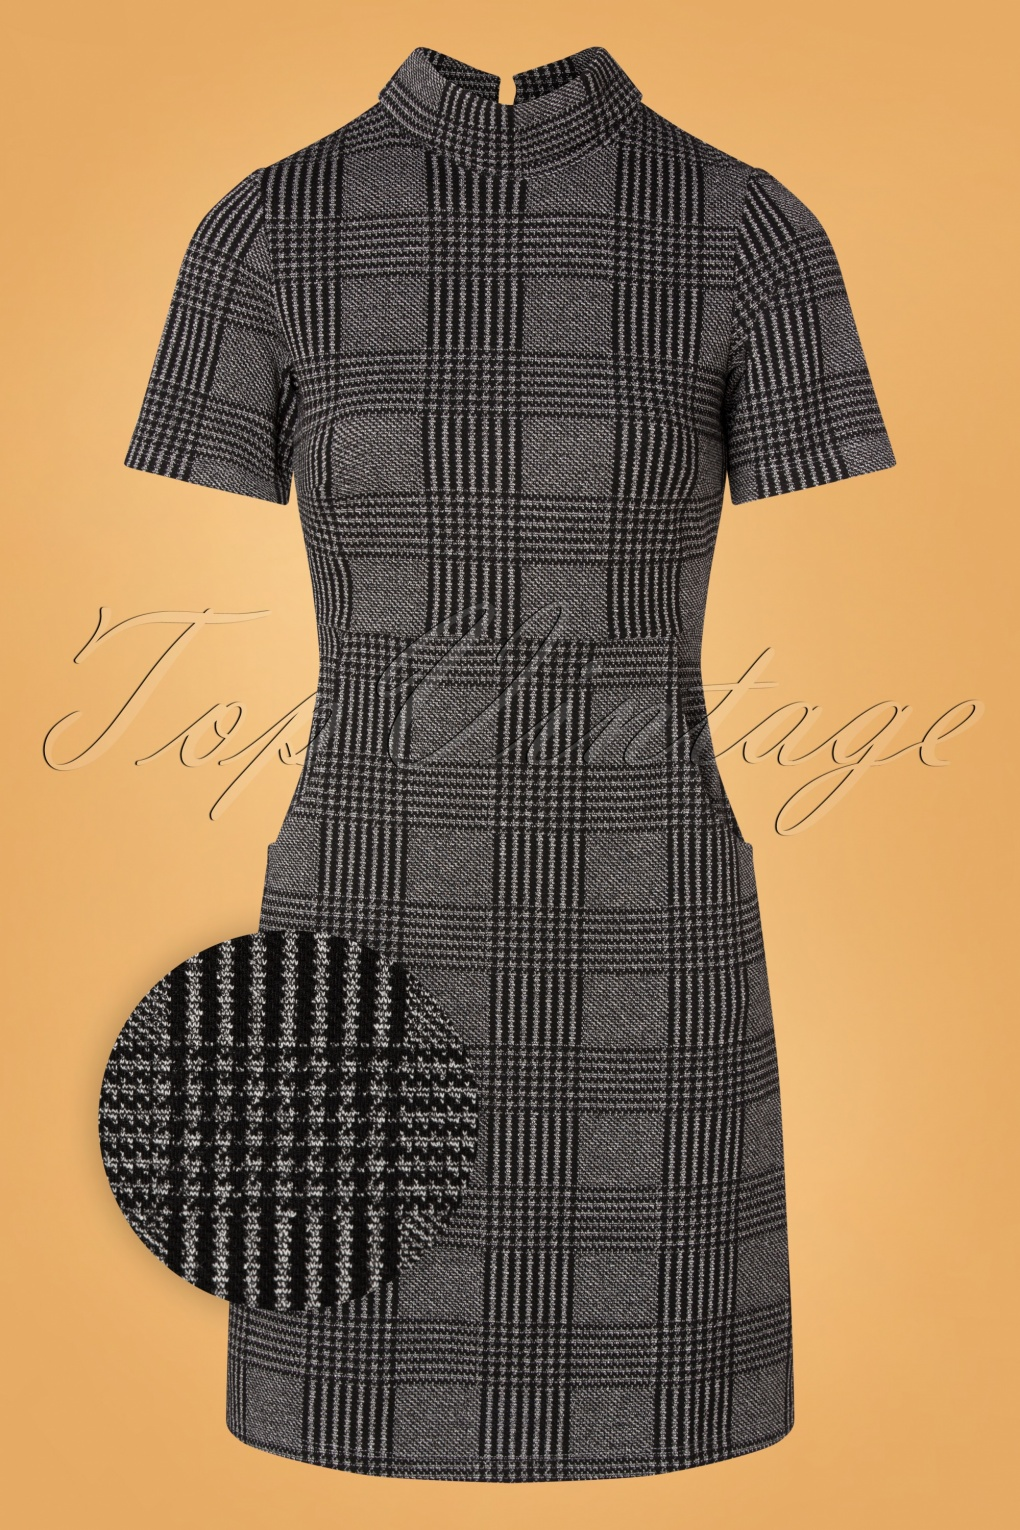 Vintage Style Dresses | Vintage Inspired Dresses 60s Baby I Got It A-line Dress in Black and White £94.02 AT vintagedancer.com